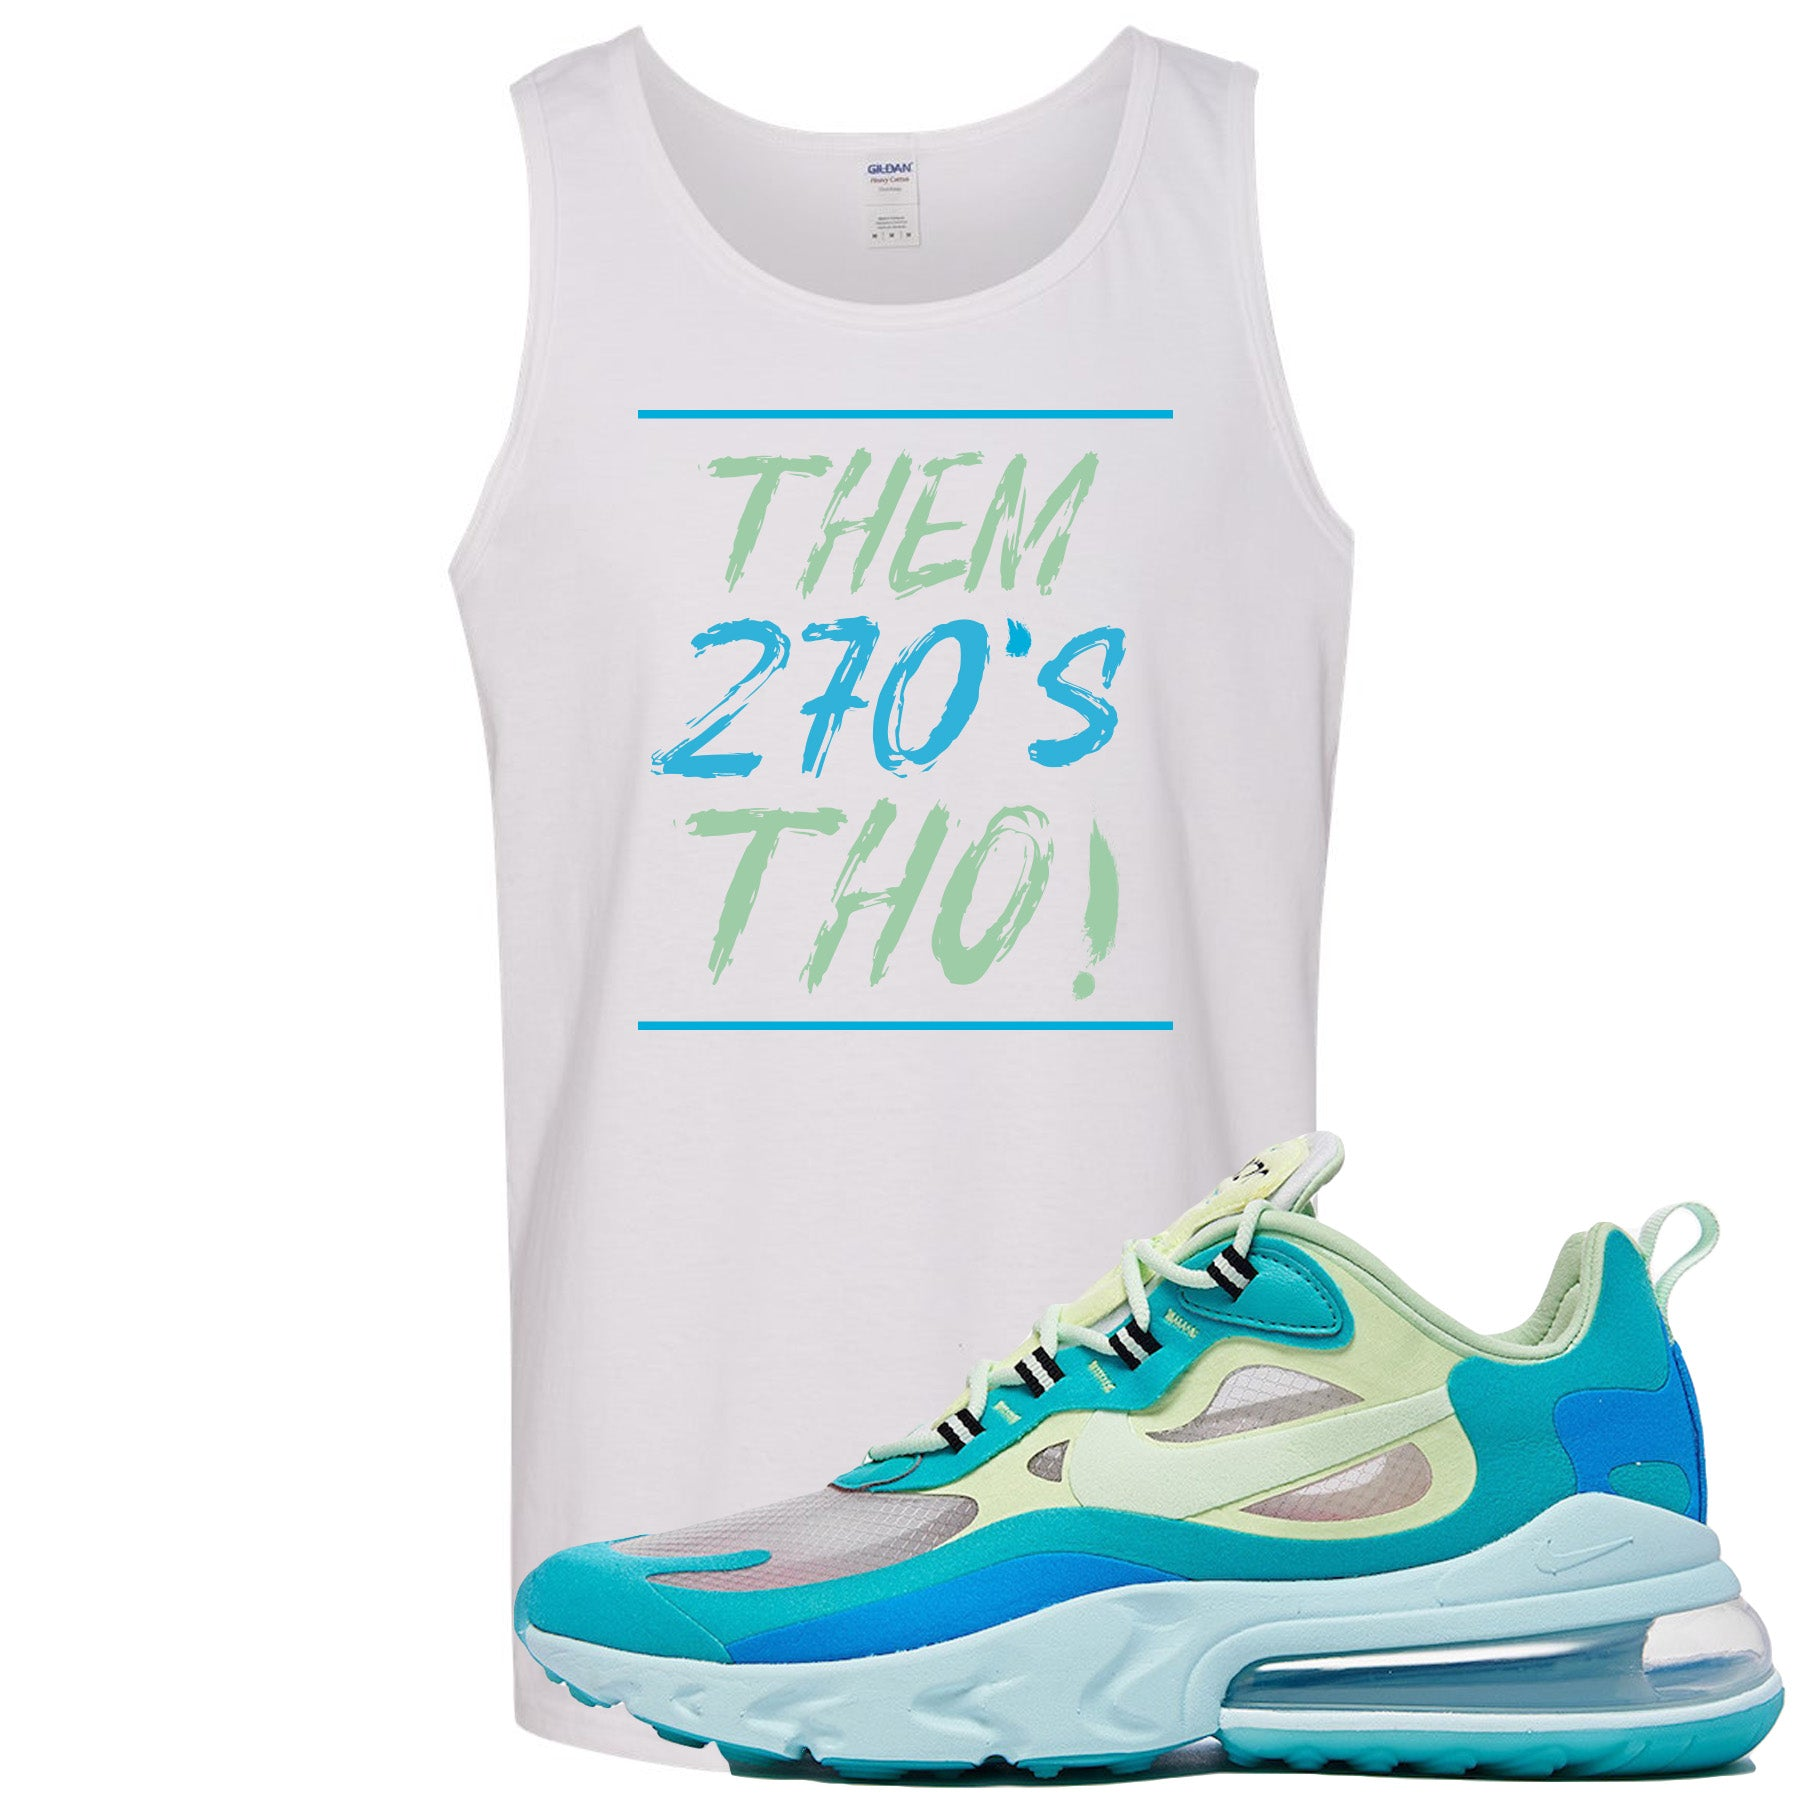 separation shoes 5d625 e4f46 Nike Air Max 270 React Hyper Jade Sneaker Match Them 270s Tho White Mens  Tank Top